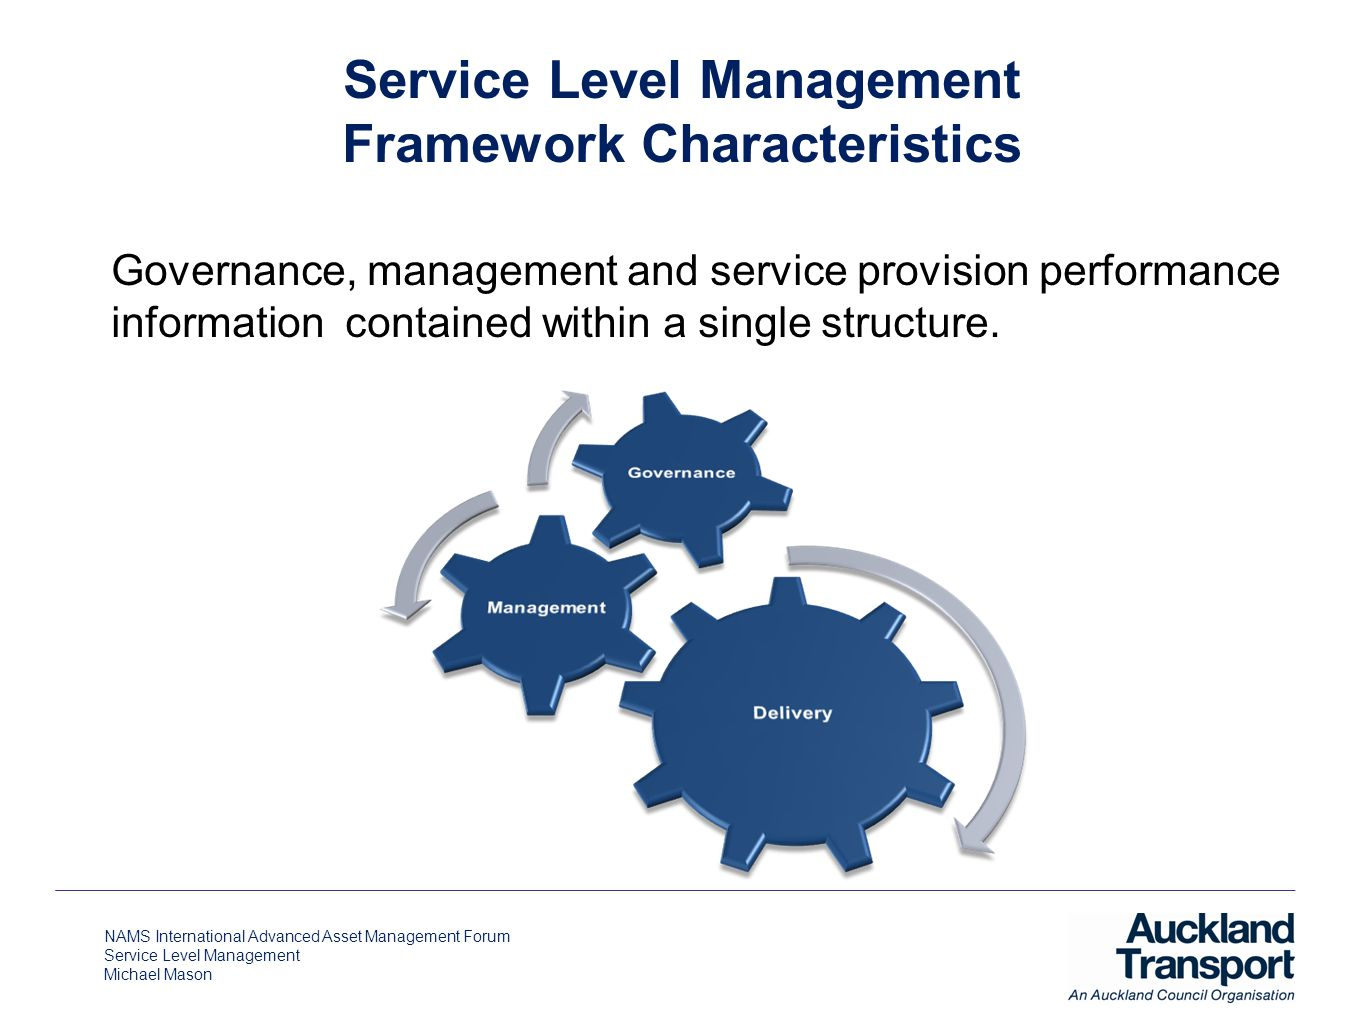 NAMS International Advanced Asset Management Forum Service Level Management Michael Mason Service Level Management Framework Characteristics Governance, management and service provision performance information contained within a single structure.